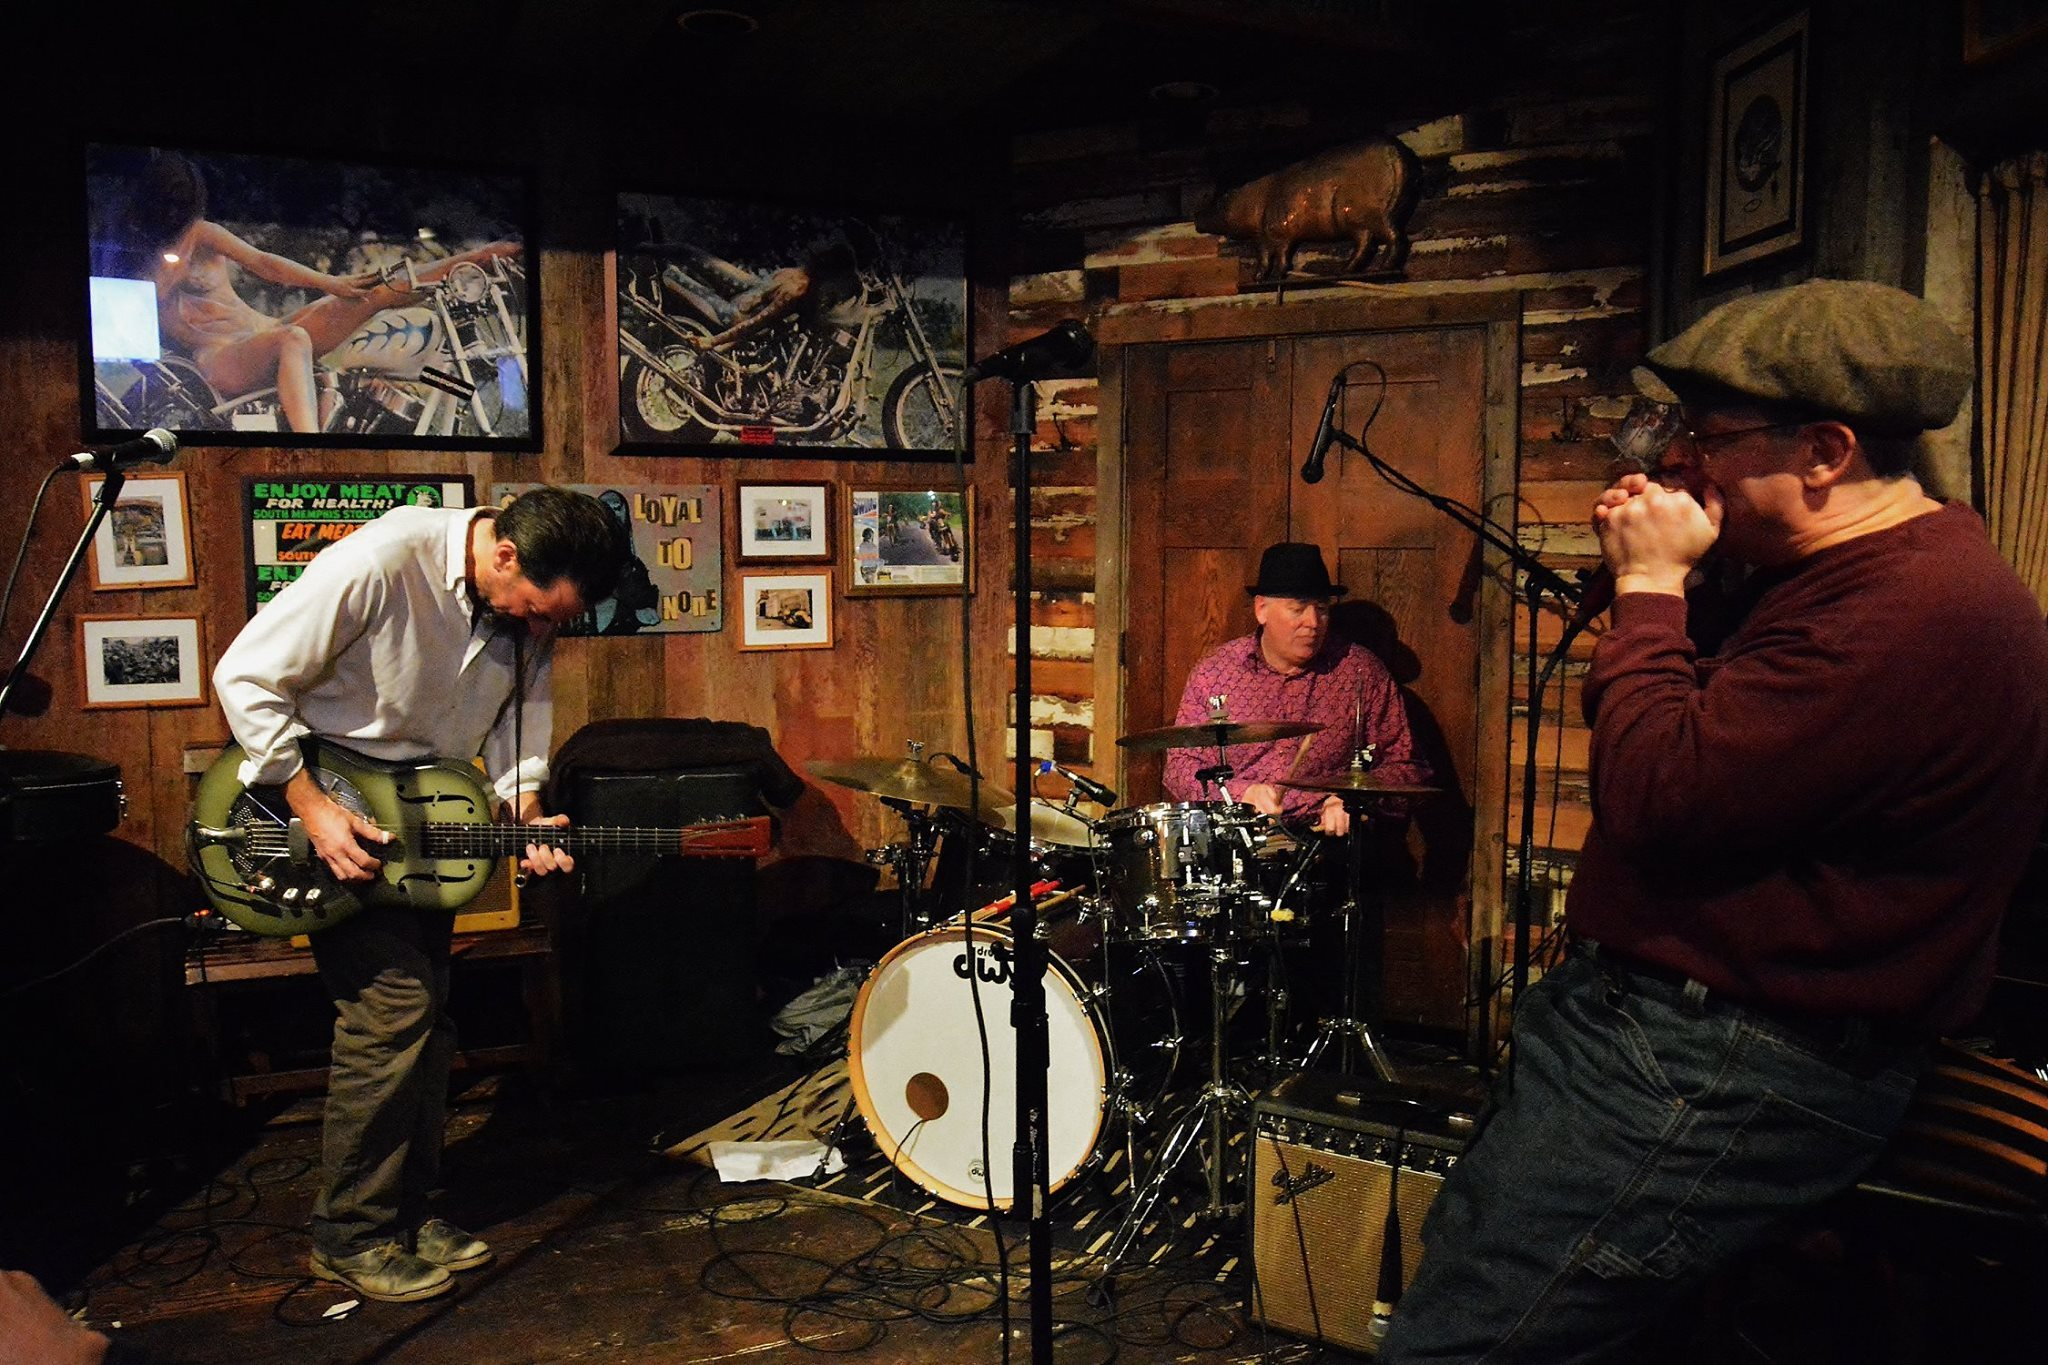 Orb Mellon Trio Live Music at Great Awakening Brewing Company